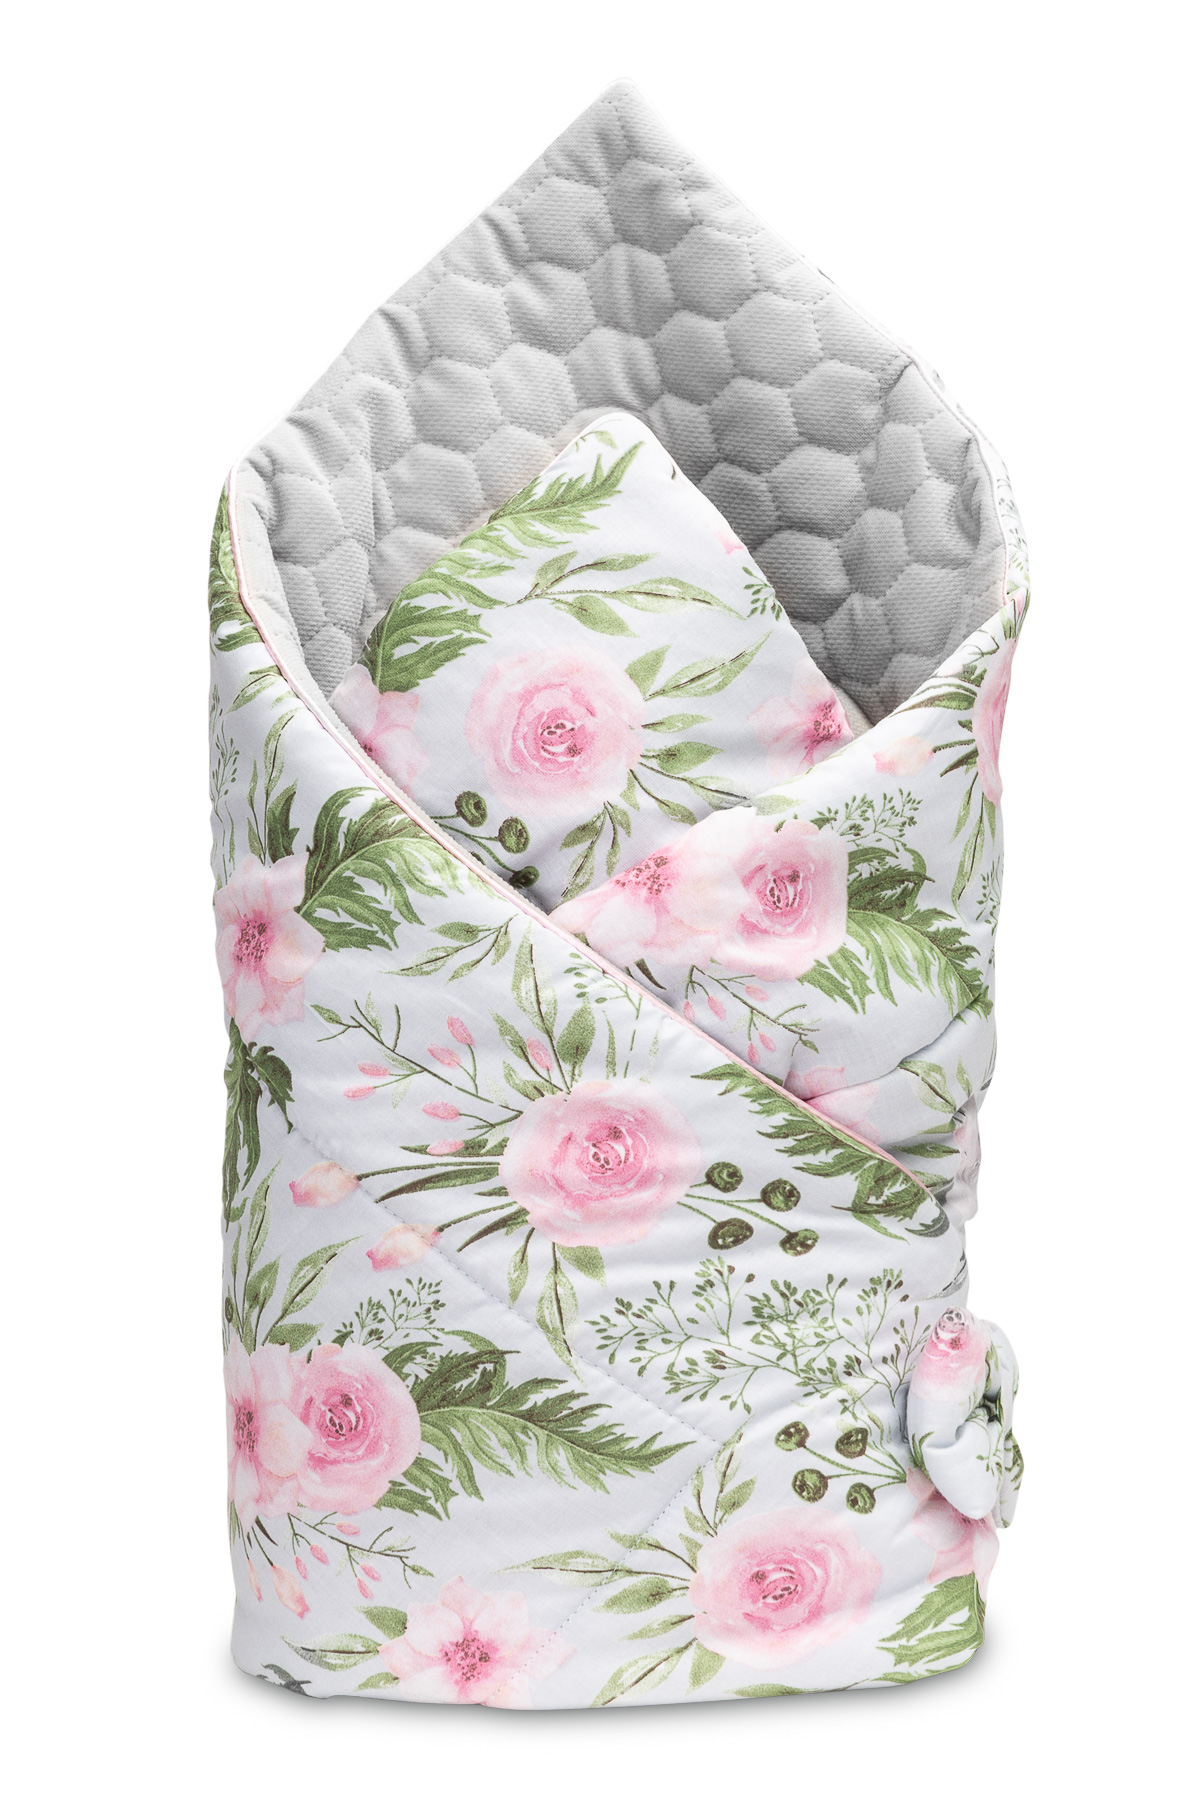 Velvet Baby Nest Cone Wrap – flowers grey